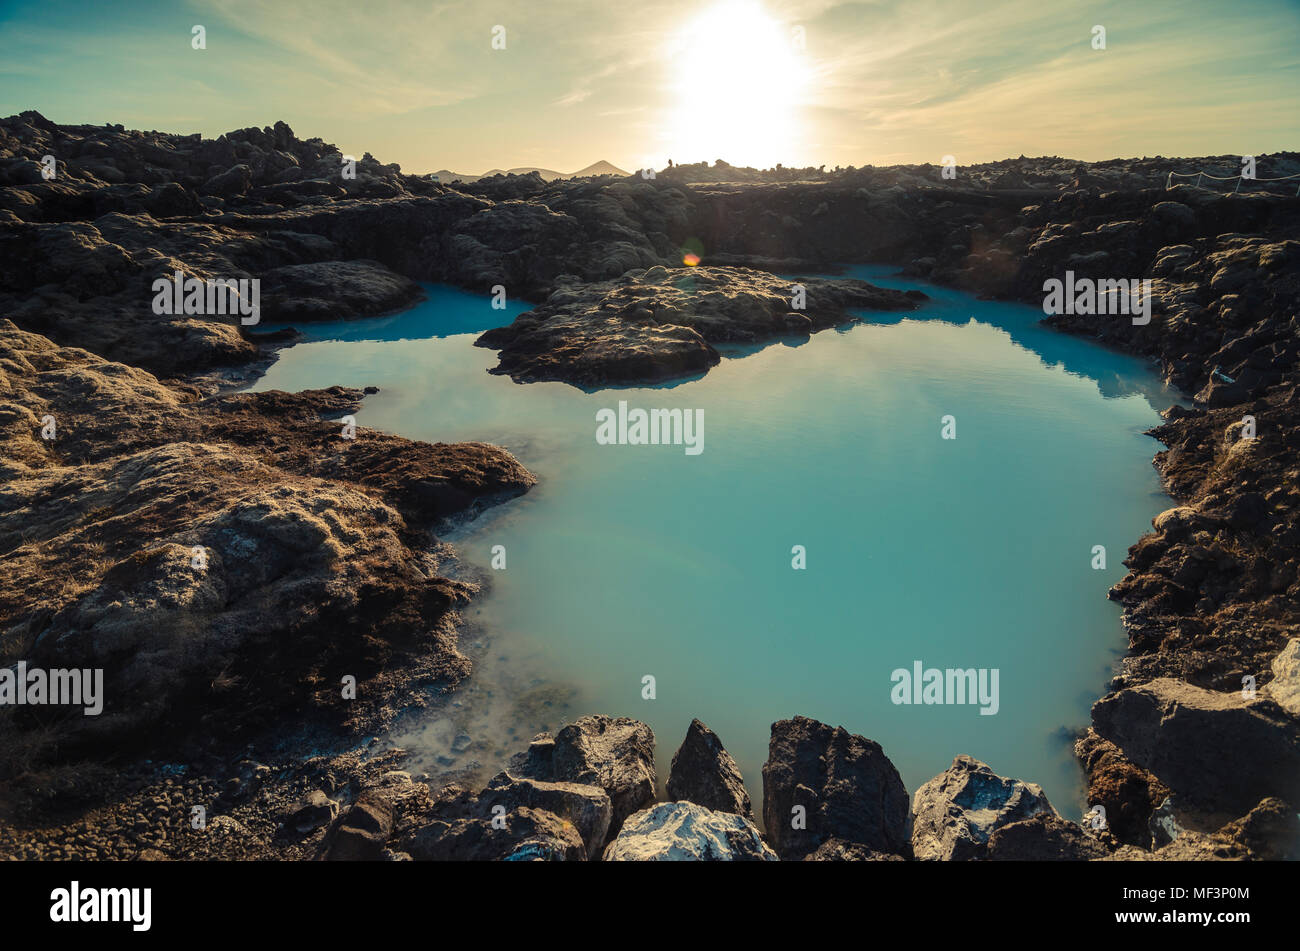 Iceland, artificial lake near geothermal area Blue Lagoon - Stock Image